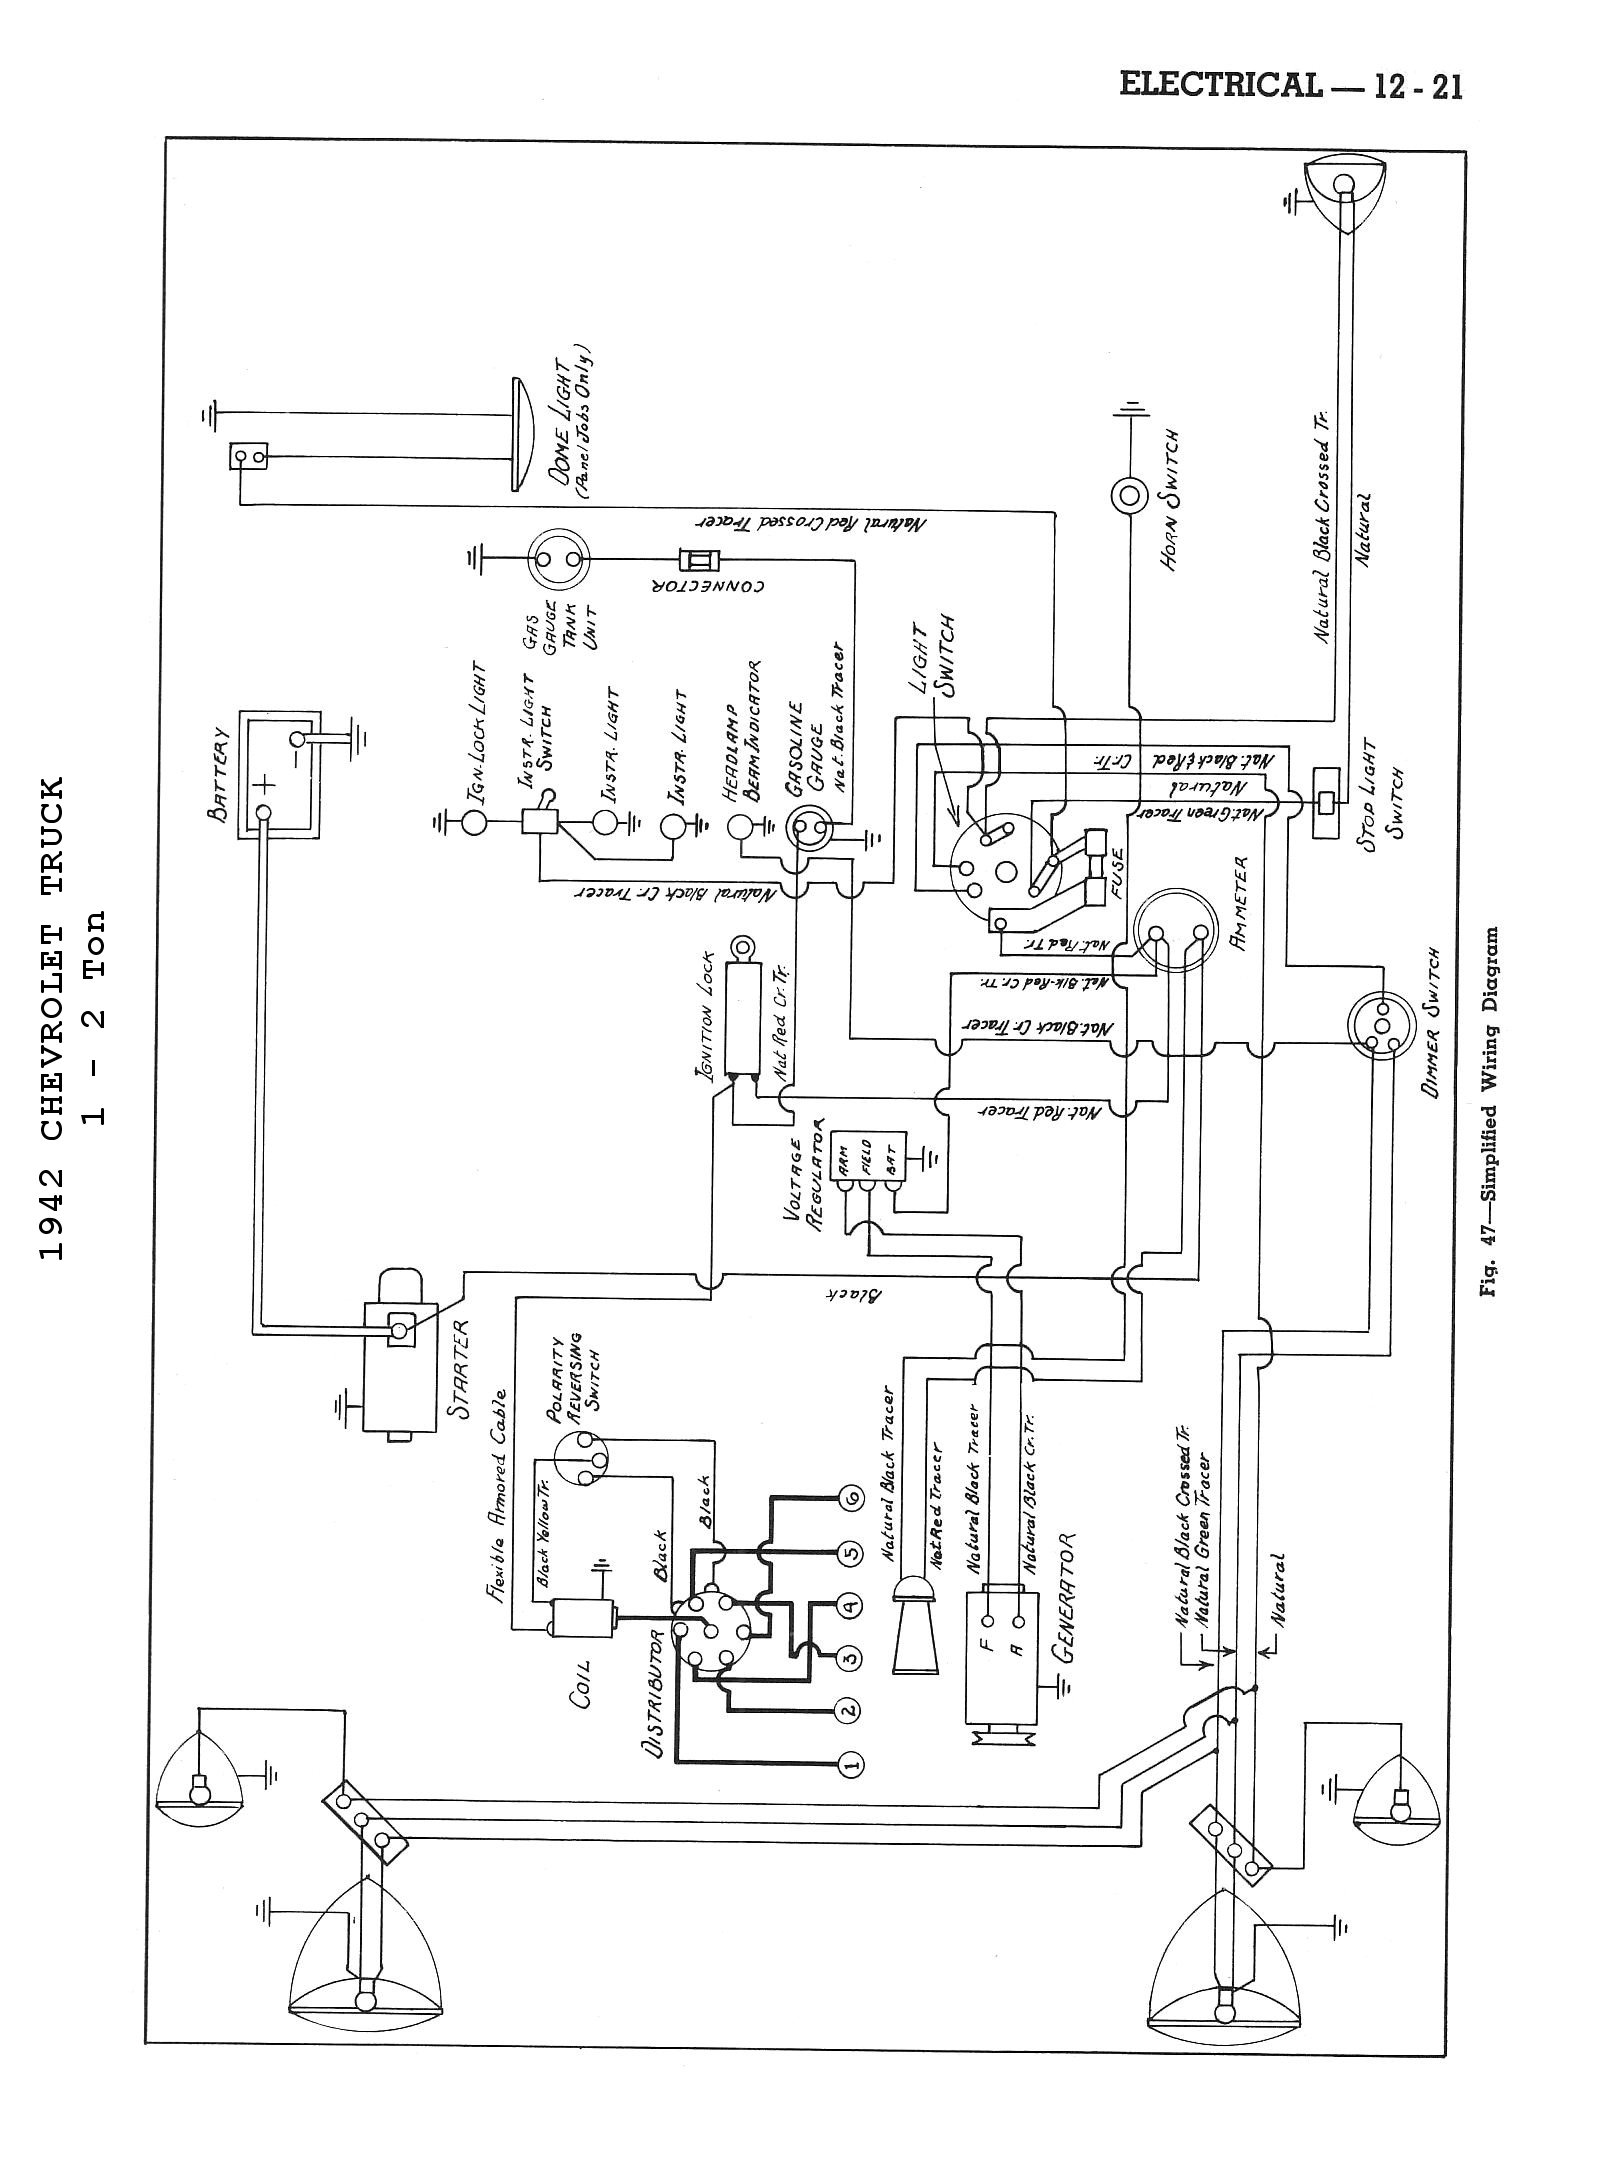 1954 gmc wiring diagram wiring diagram